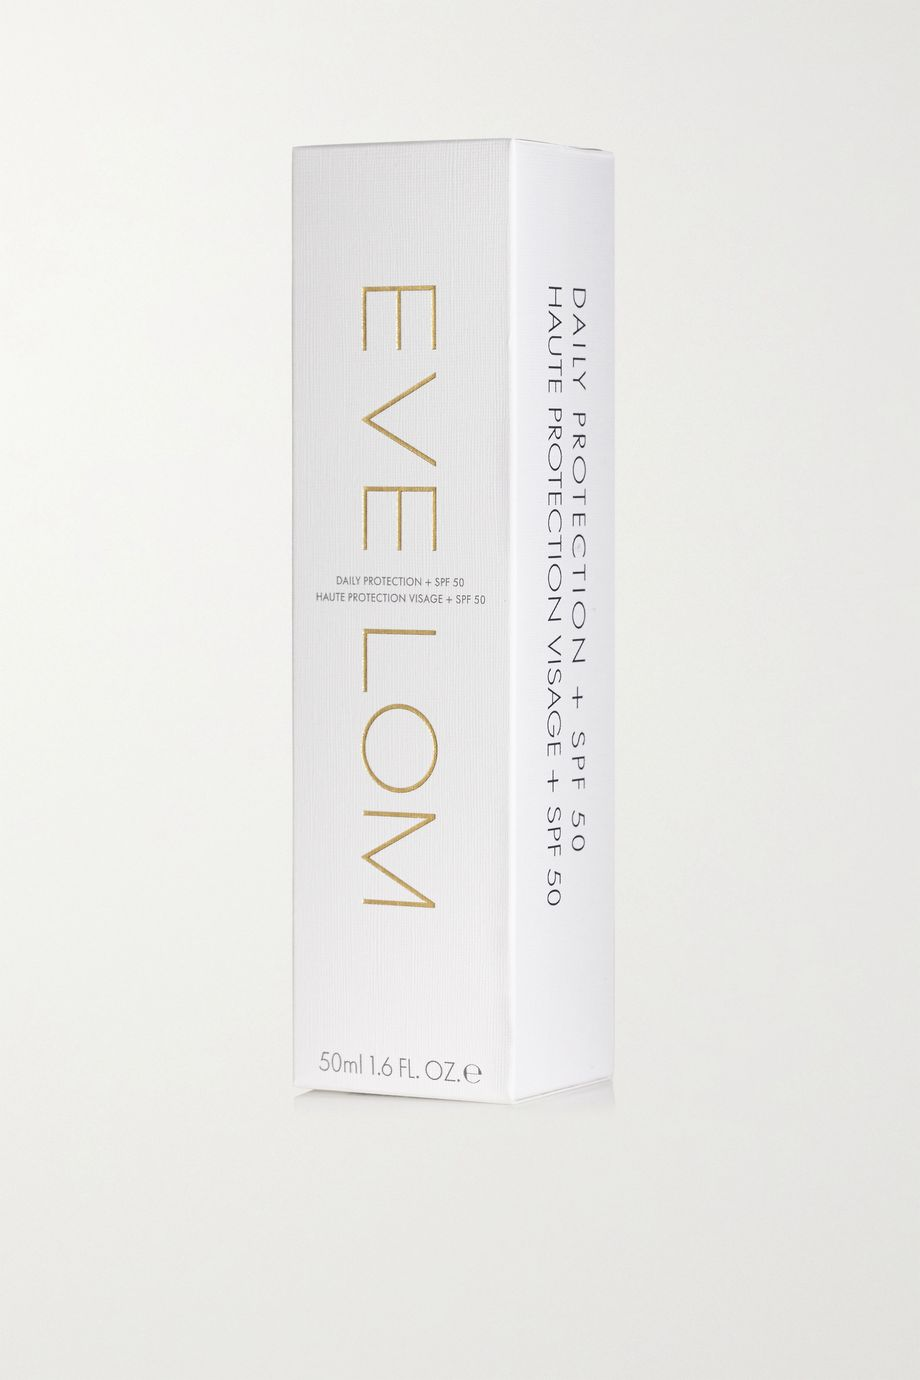 Eve Lom SPF50 Daily Protection, 50ml